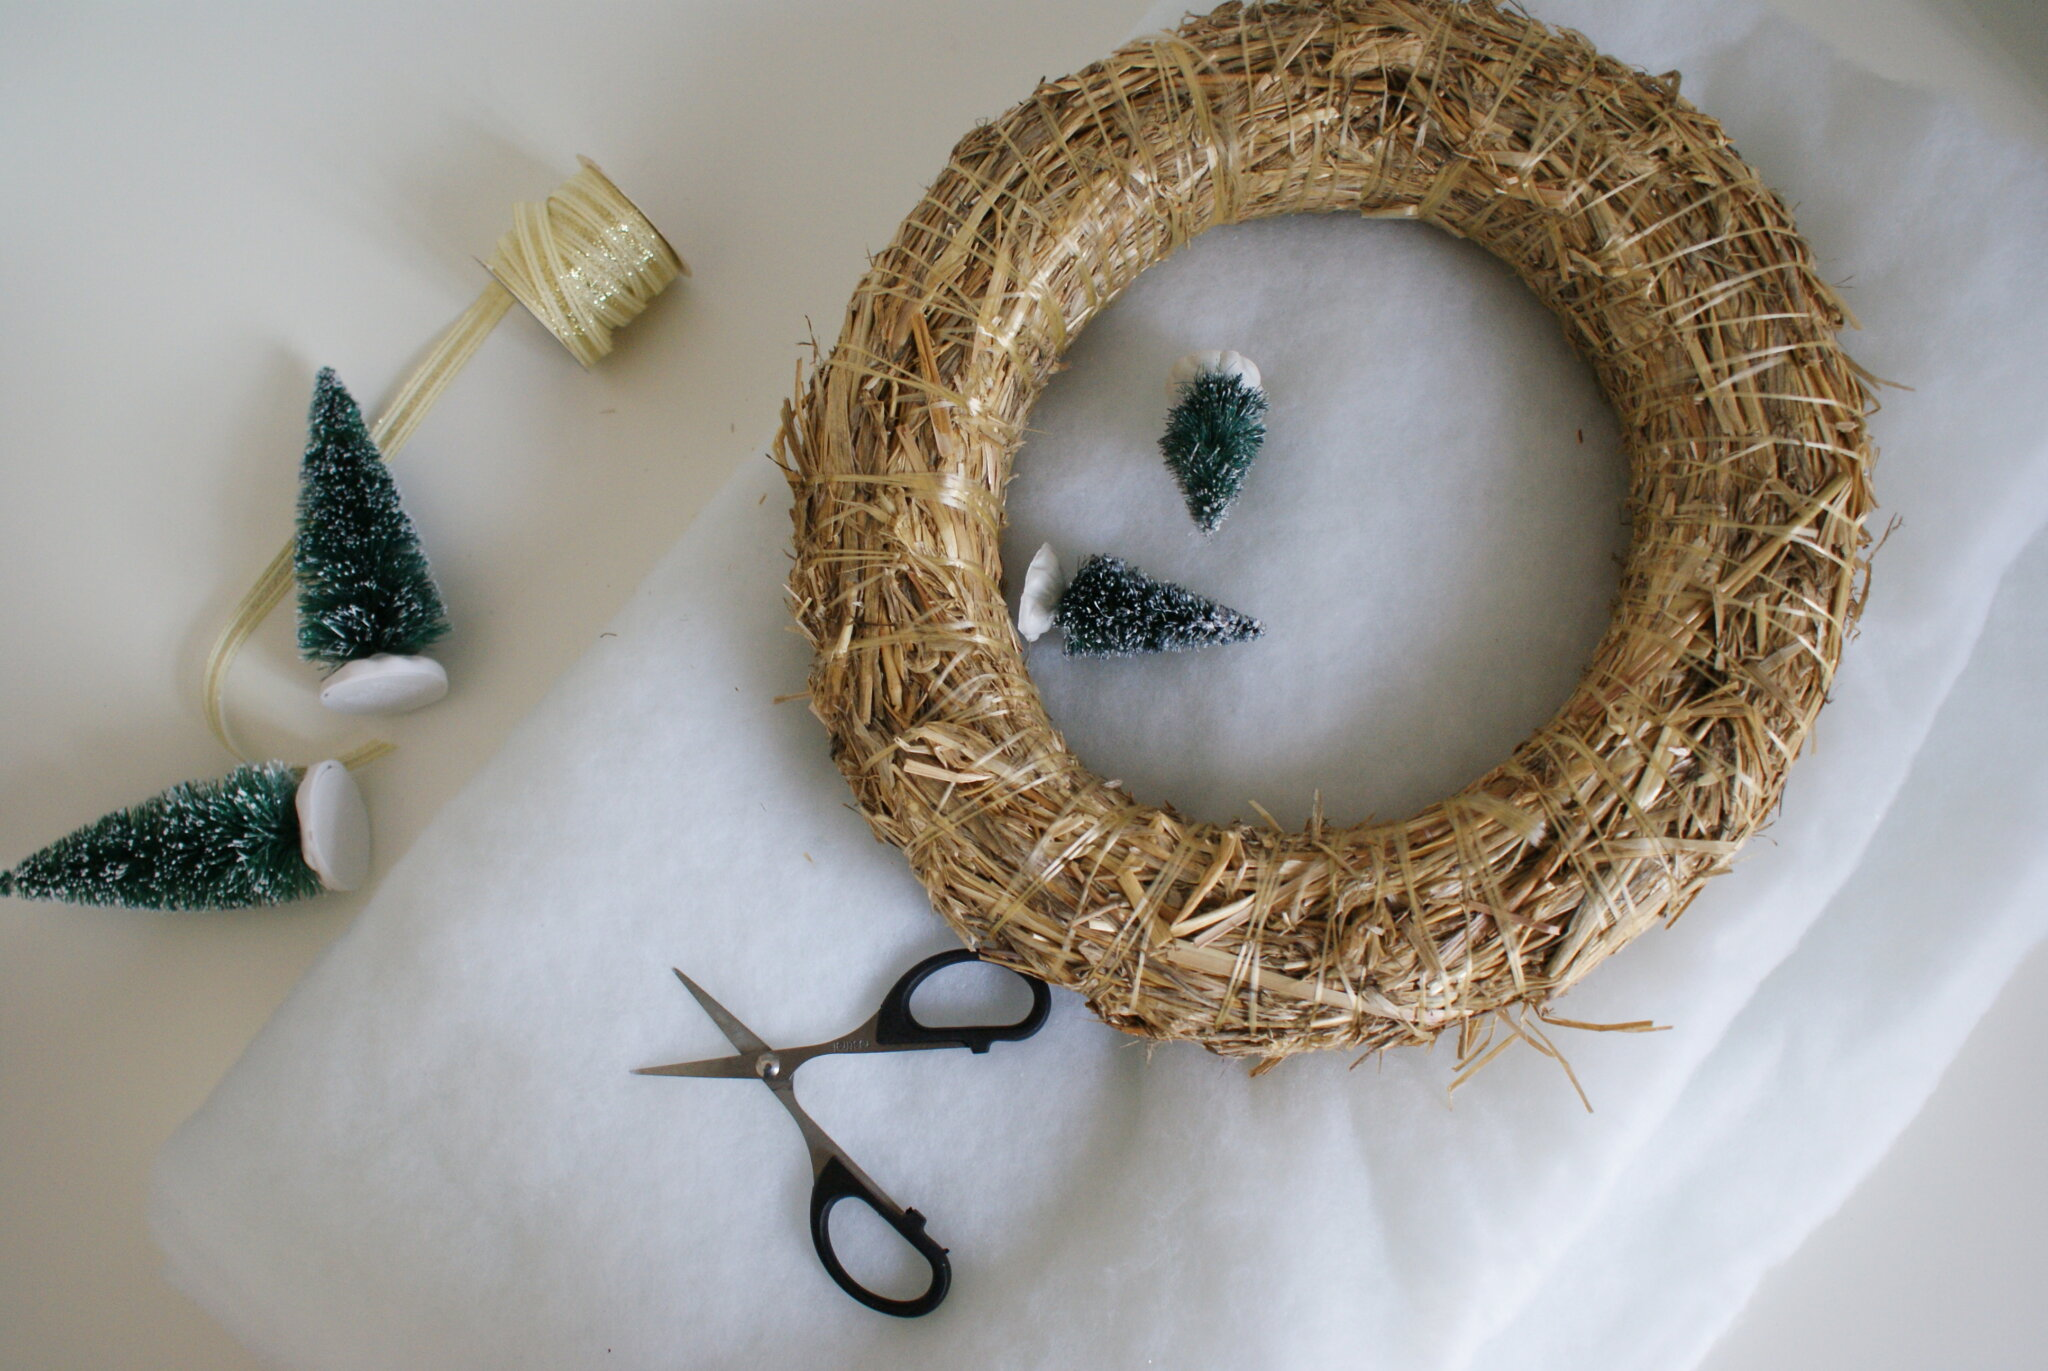 diy cotton snow wreath christmas handmade winter miniature tutorial easy decor idea home